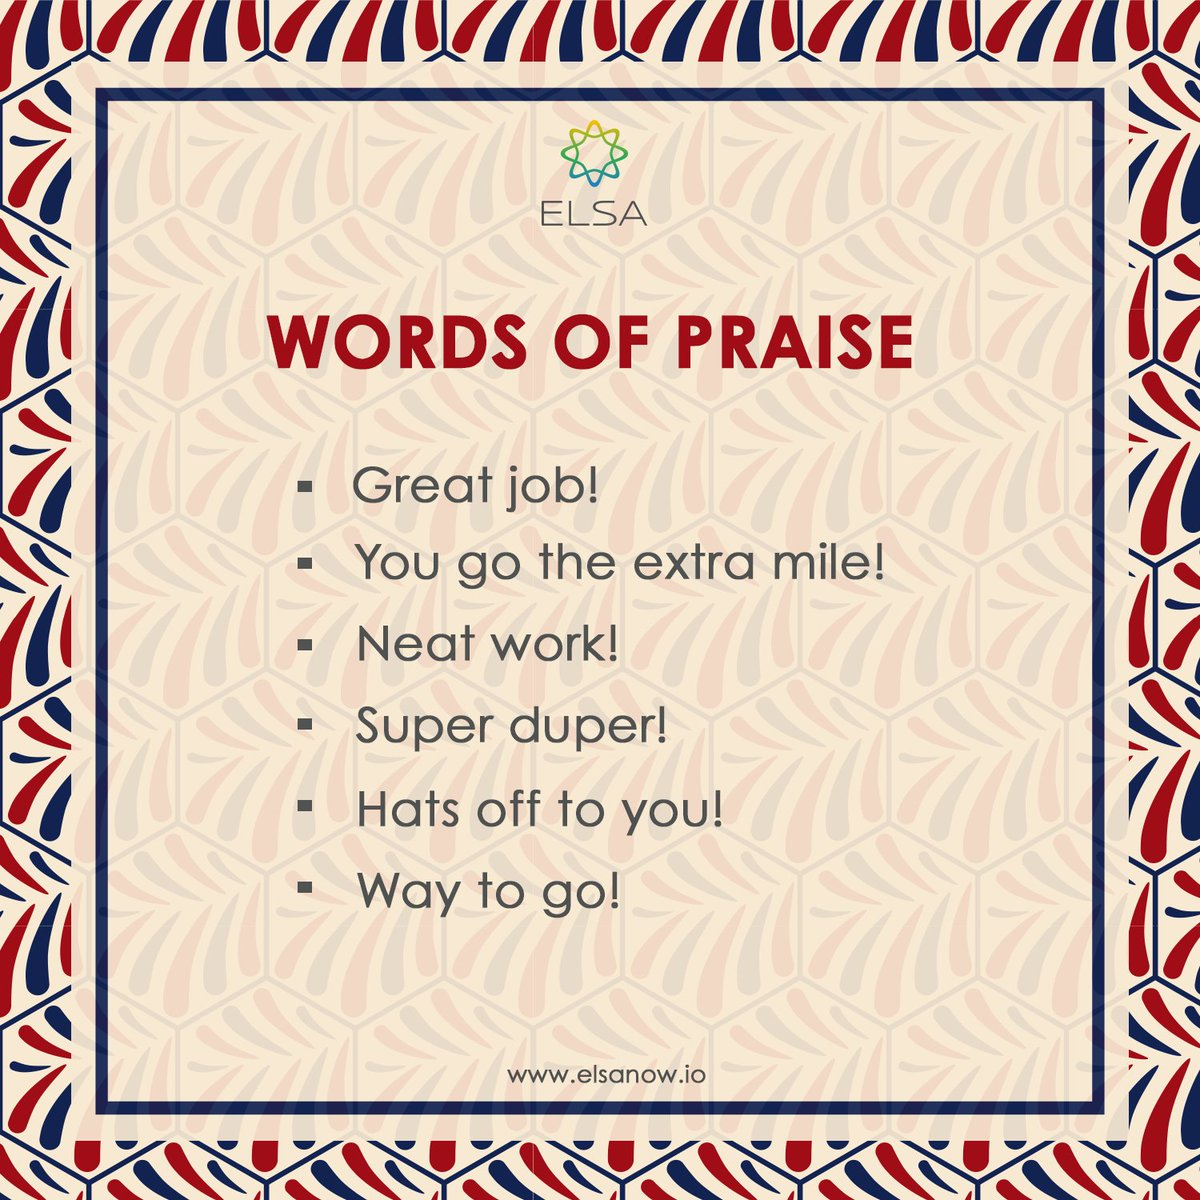 Here are some words of praise for you! Keep doing a great job! Learn more at Elsa Speak app at https://t.co/bENiEpfRpe.  #EnglishTips #SpokenEnglish #PracticewithElsa #LearnMore https://t.co/oAVFnNXXvp